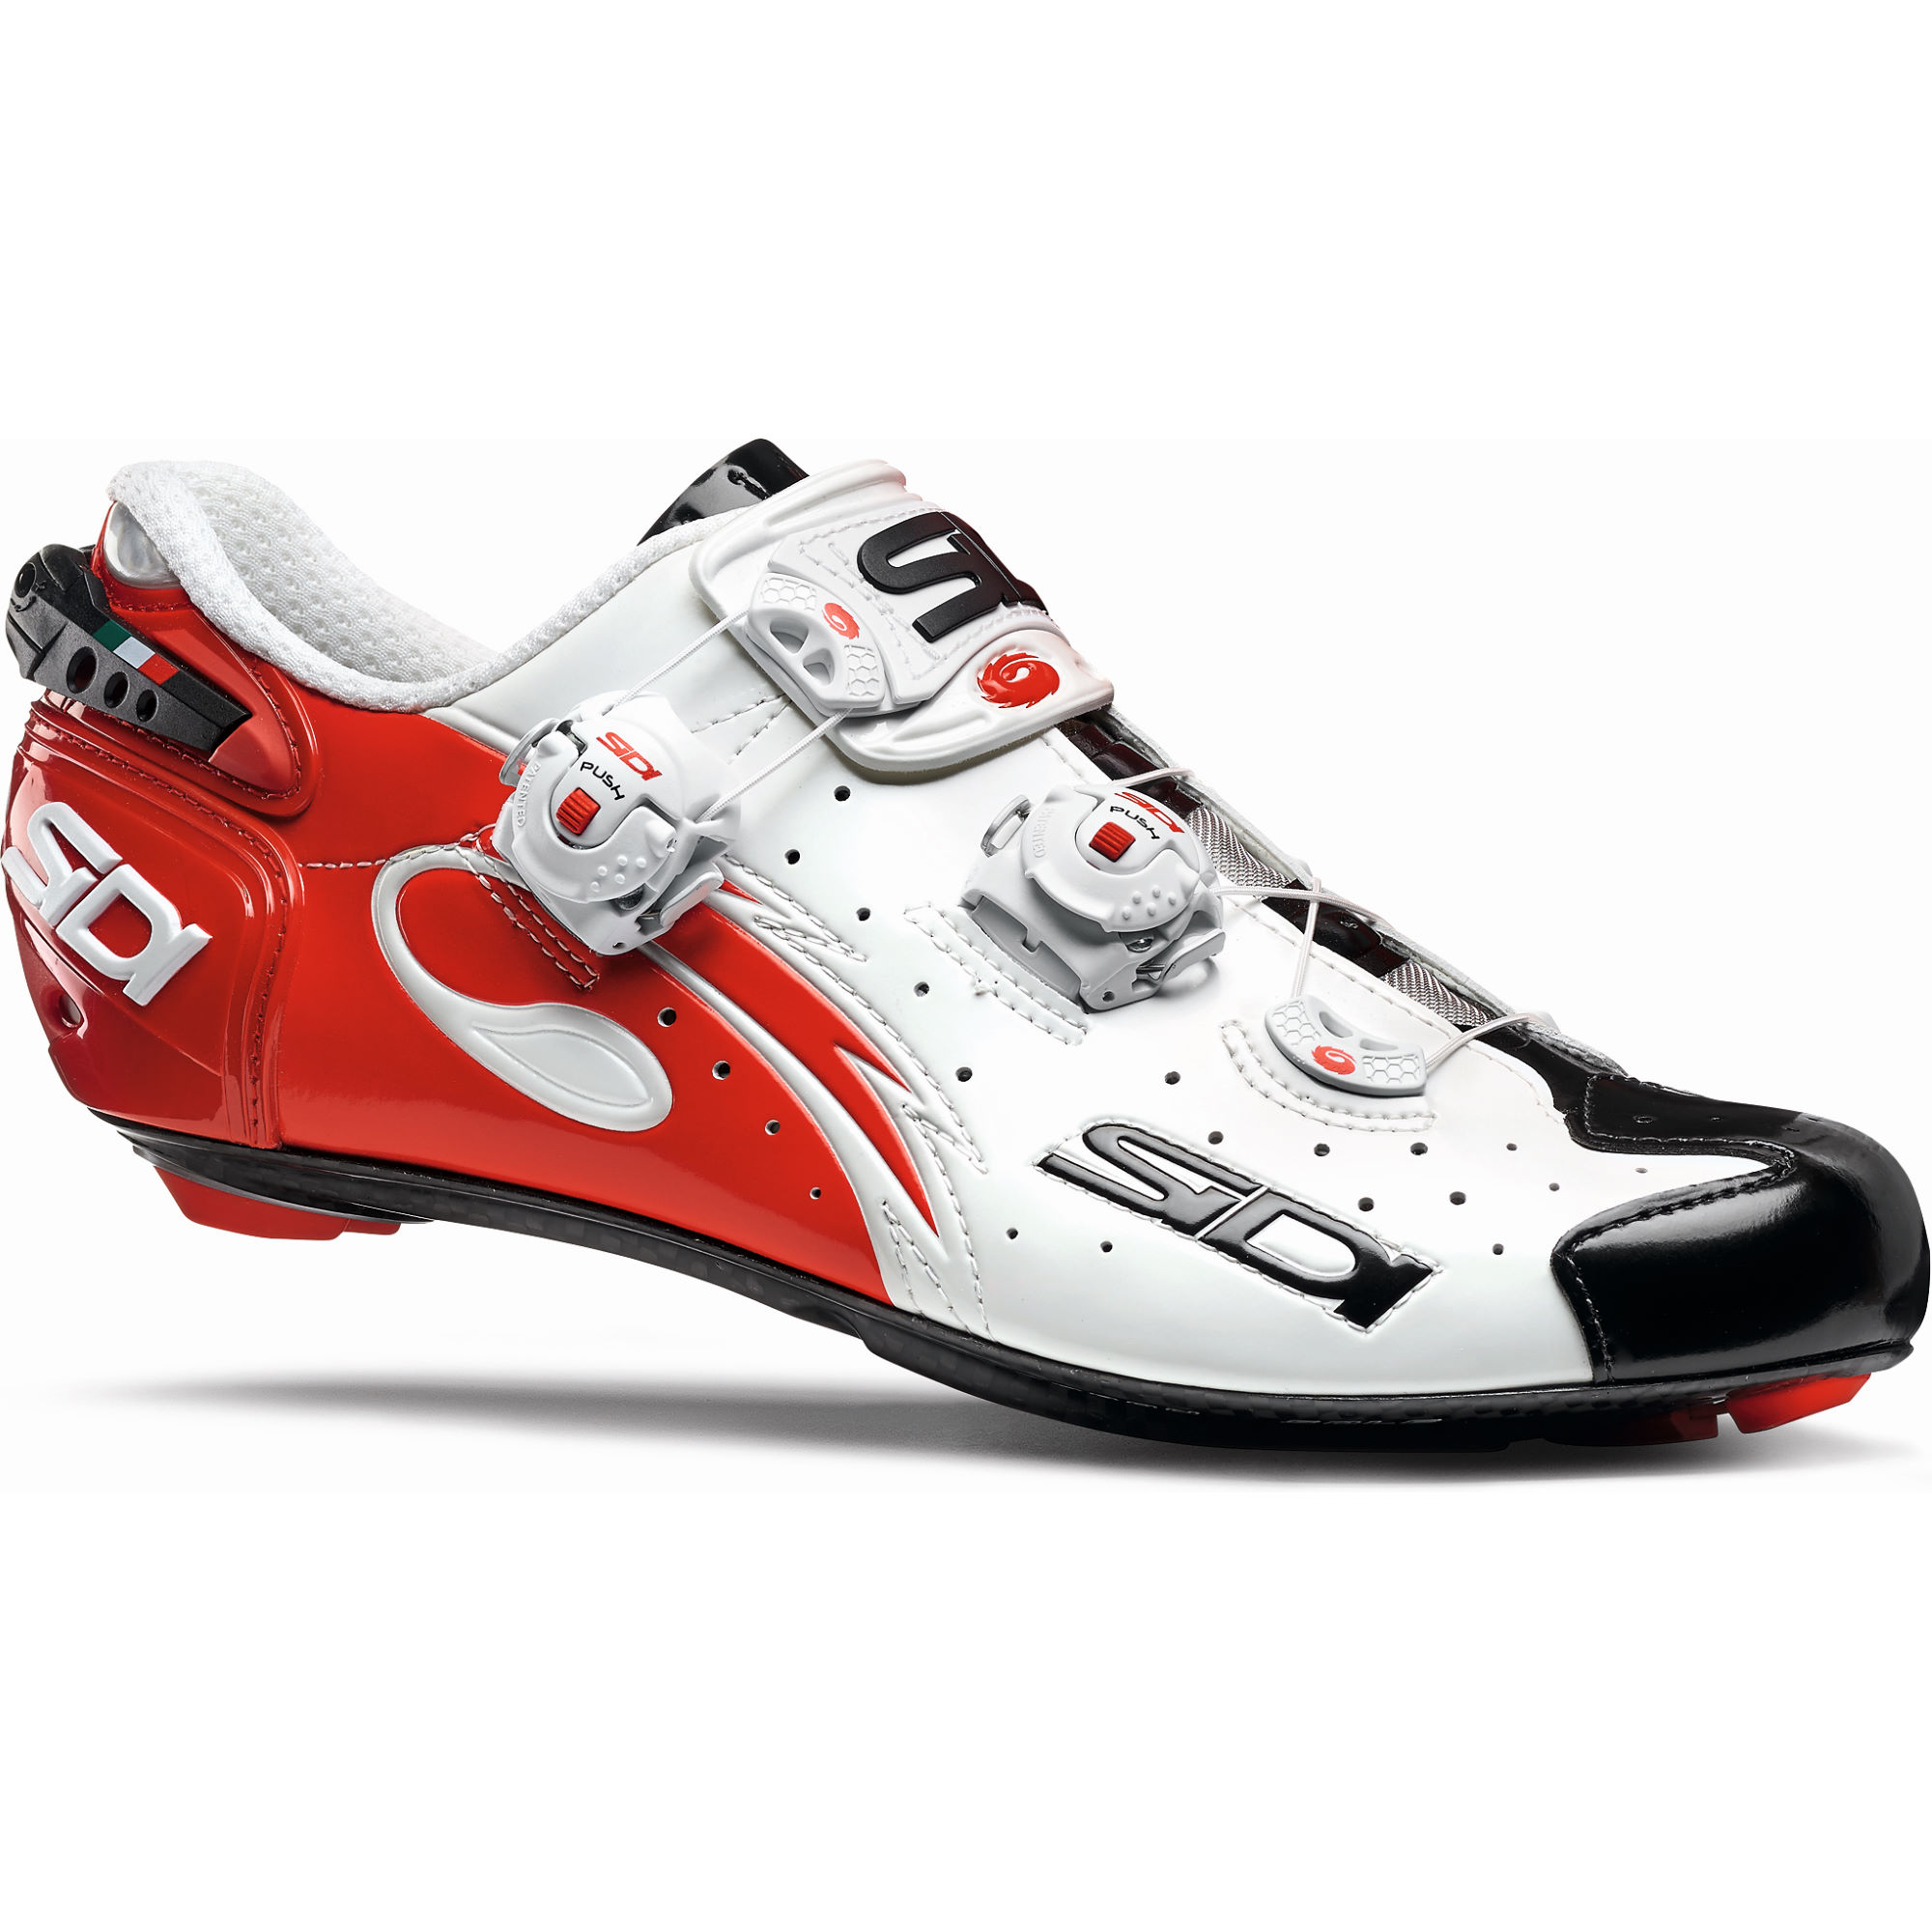 Wiggle Sidi Wire Carbon Vernice Road Shoes Road Shoes